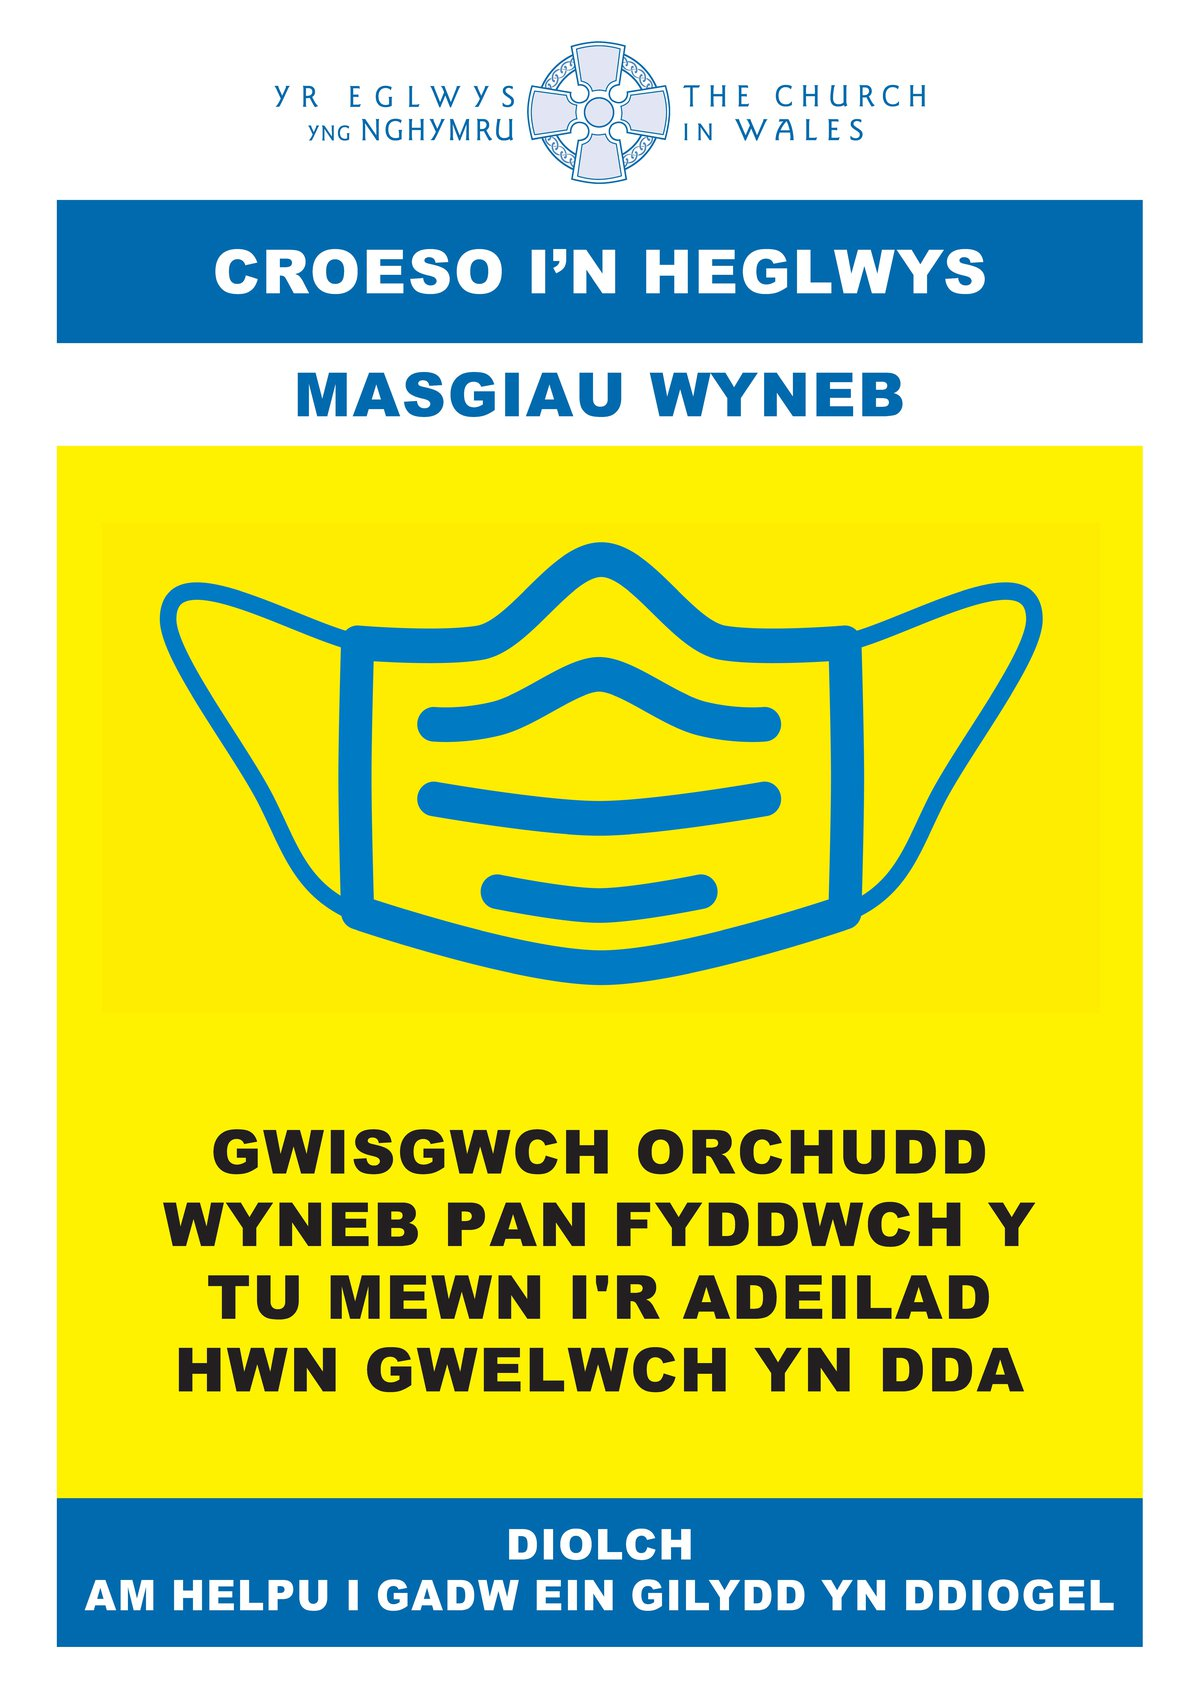 C19_Safety_posters_face mask_WELSH.jpg